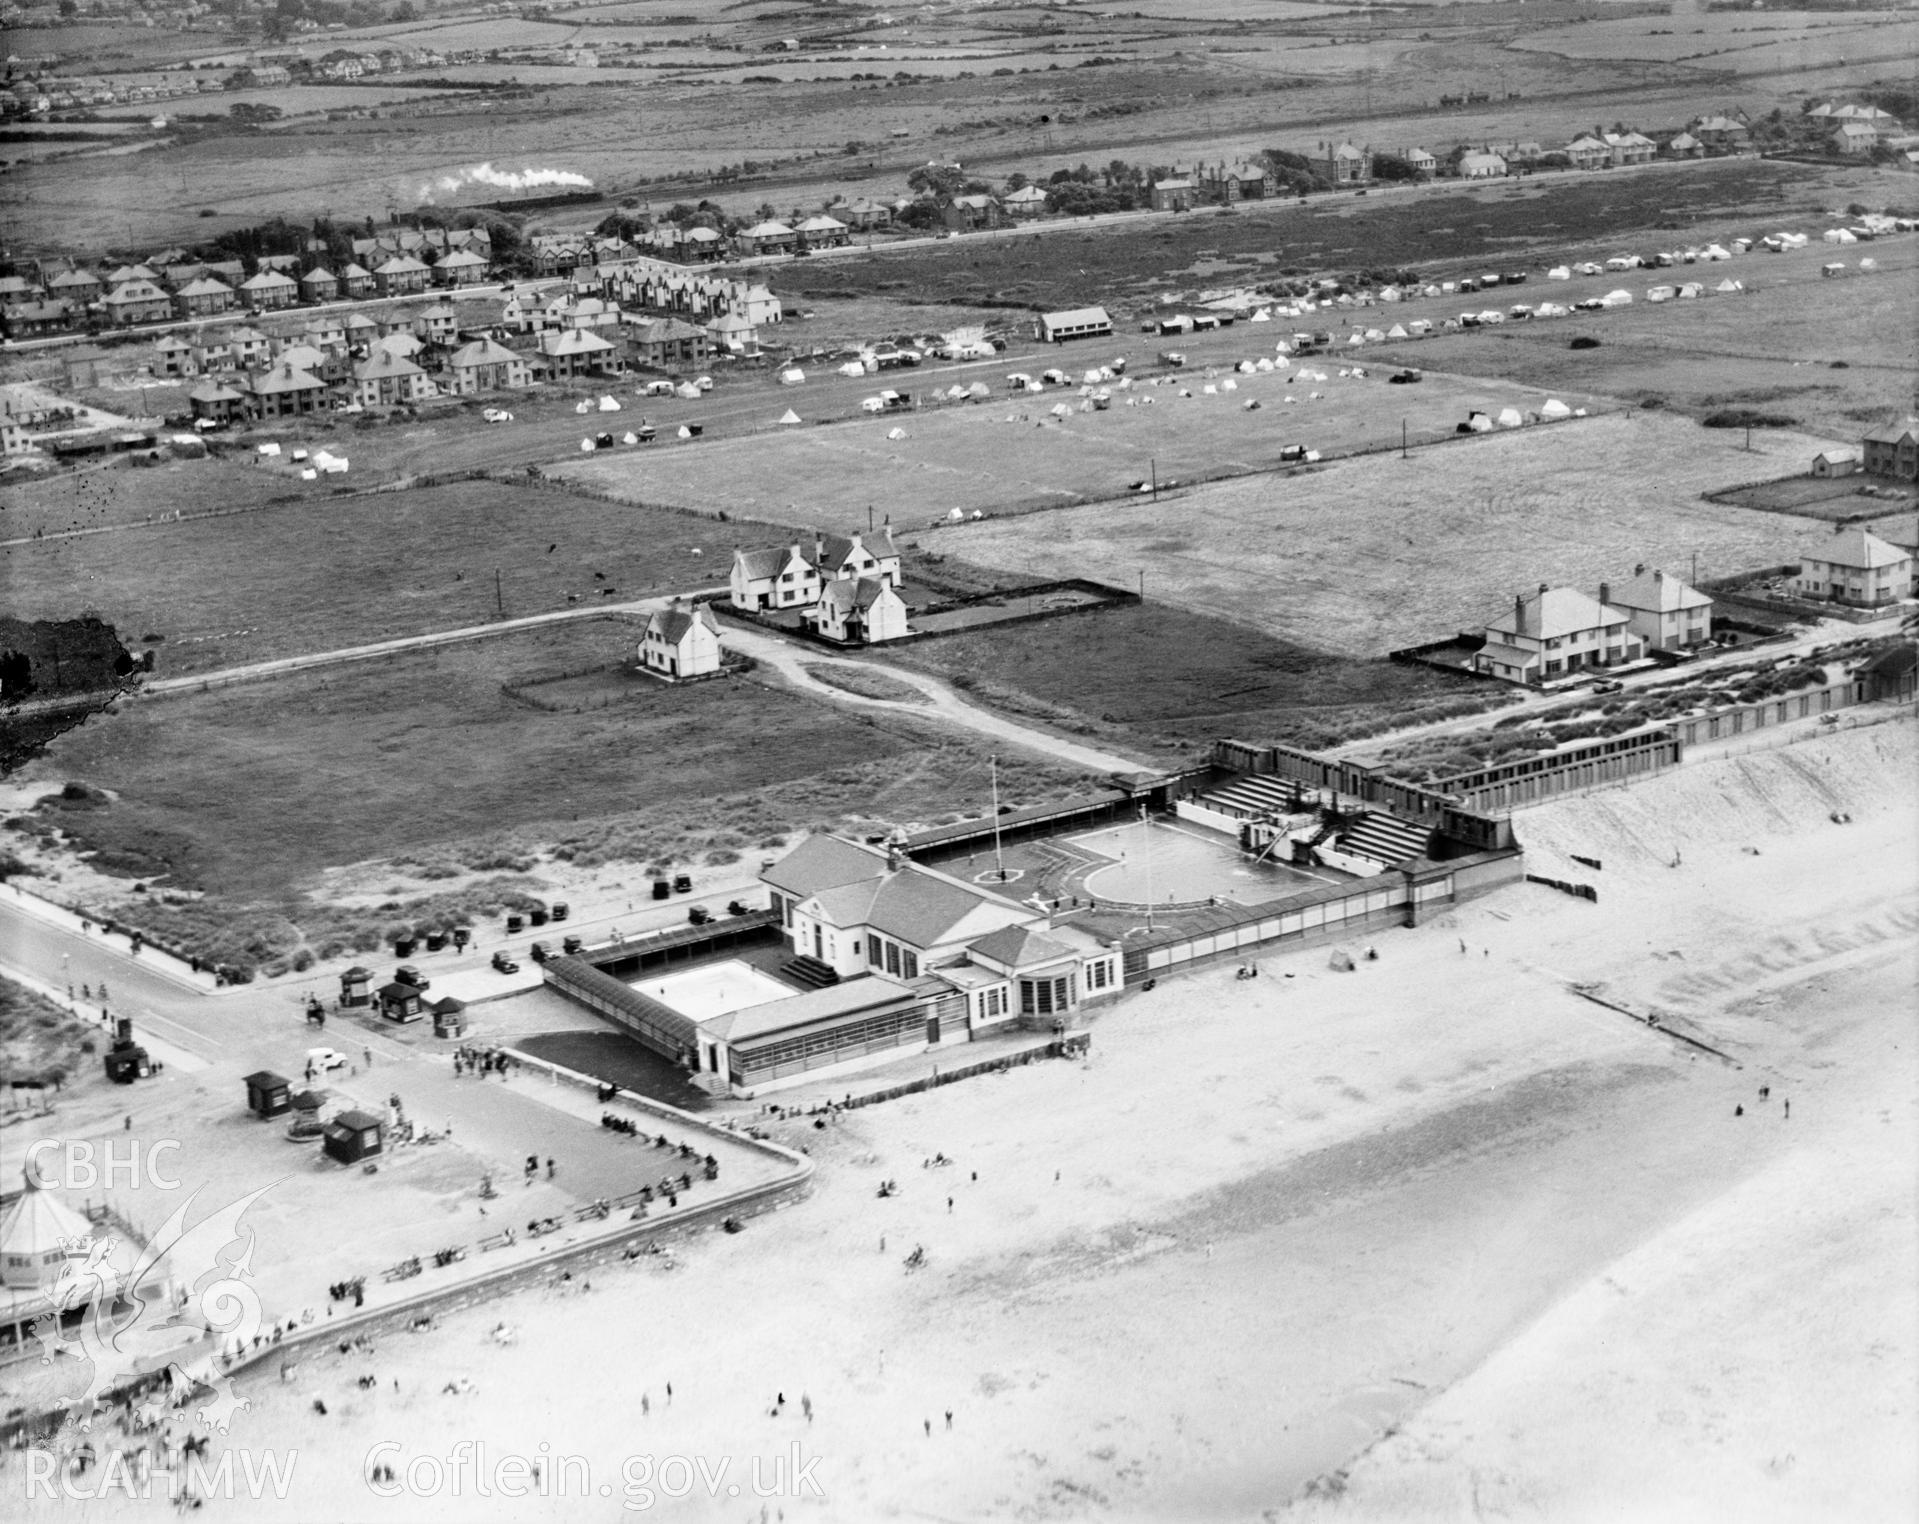 View of Prestatyn showing the newly built Lido, oblique aerial view. 5?x4? black and white glass plate negative.